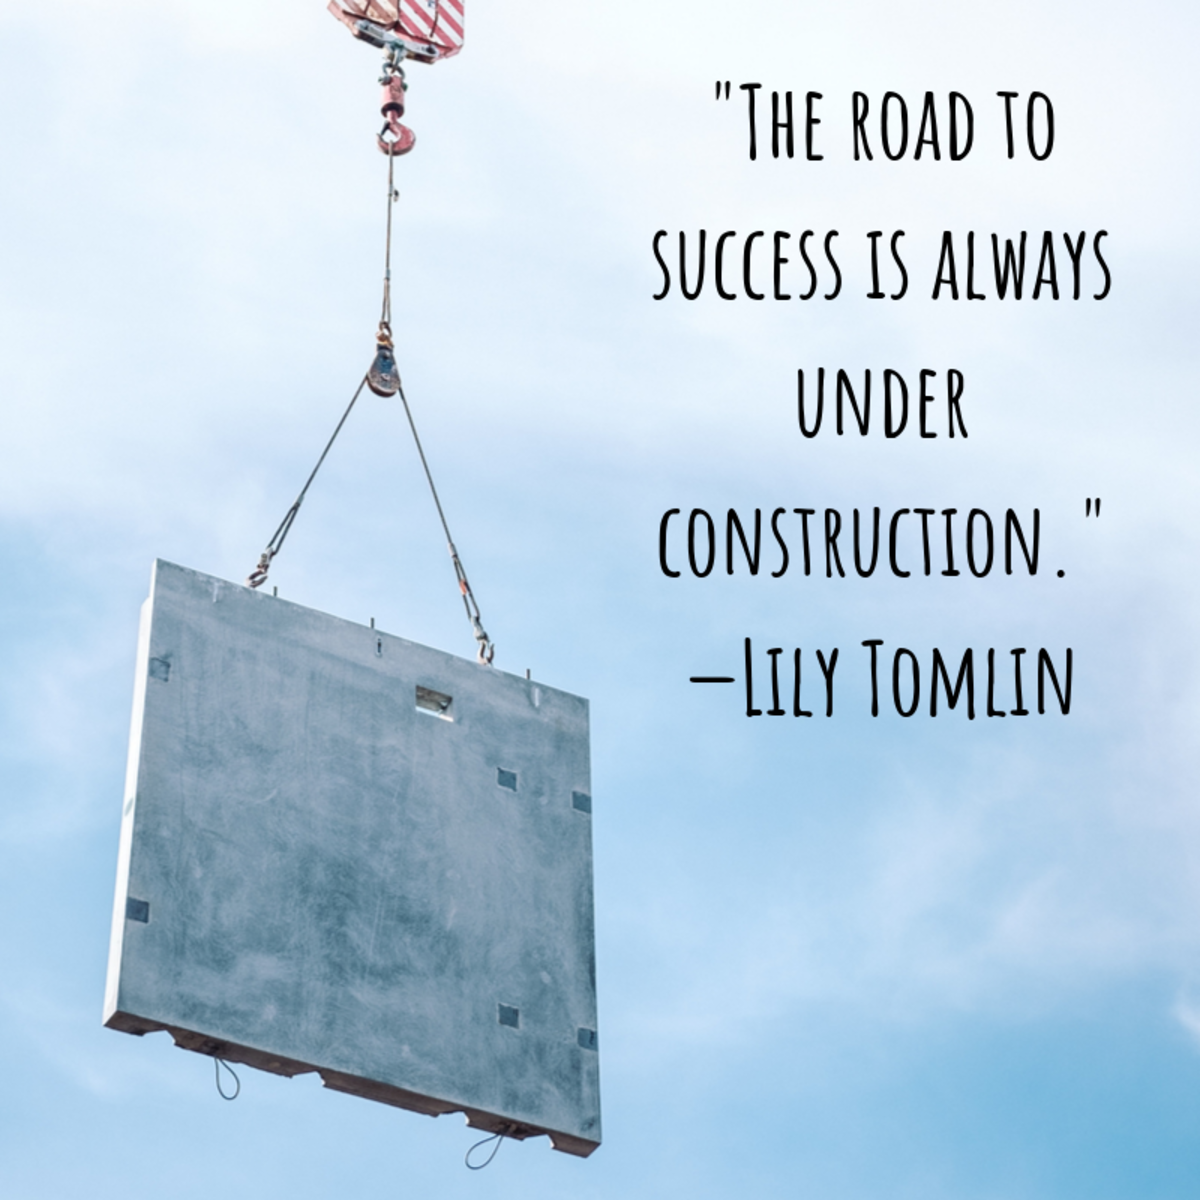 """The road to success is always under construction."" —Lily Tomlin"